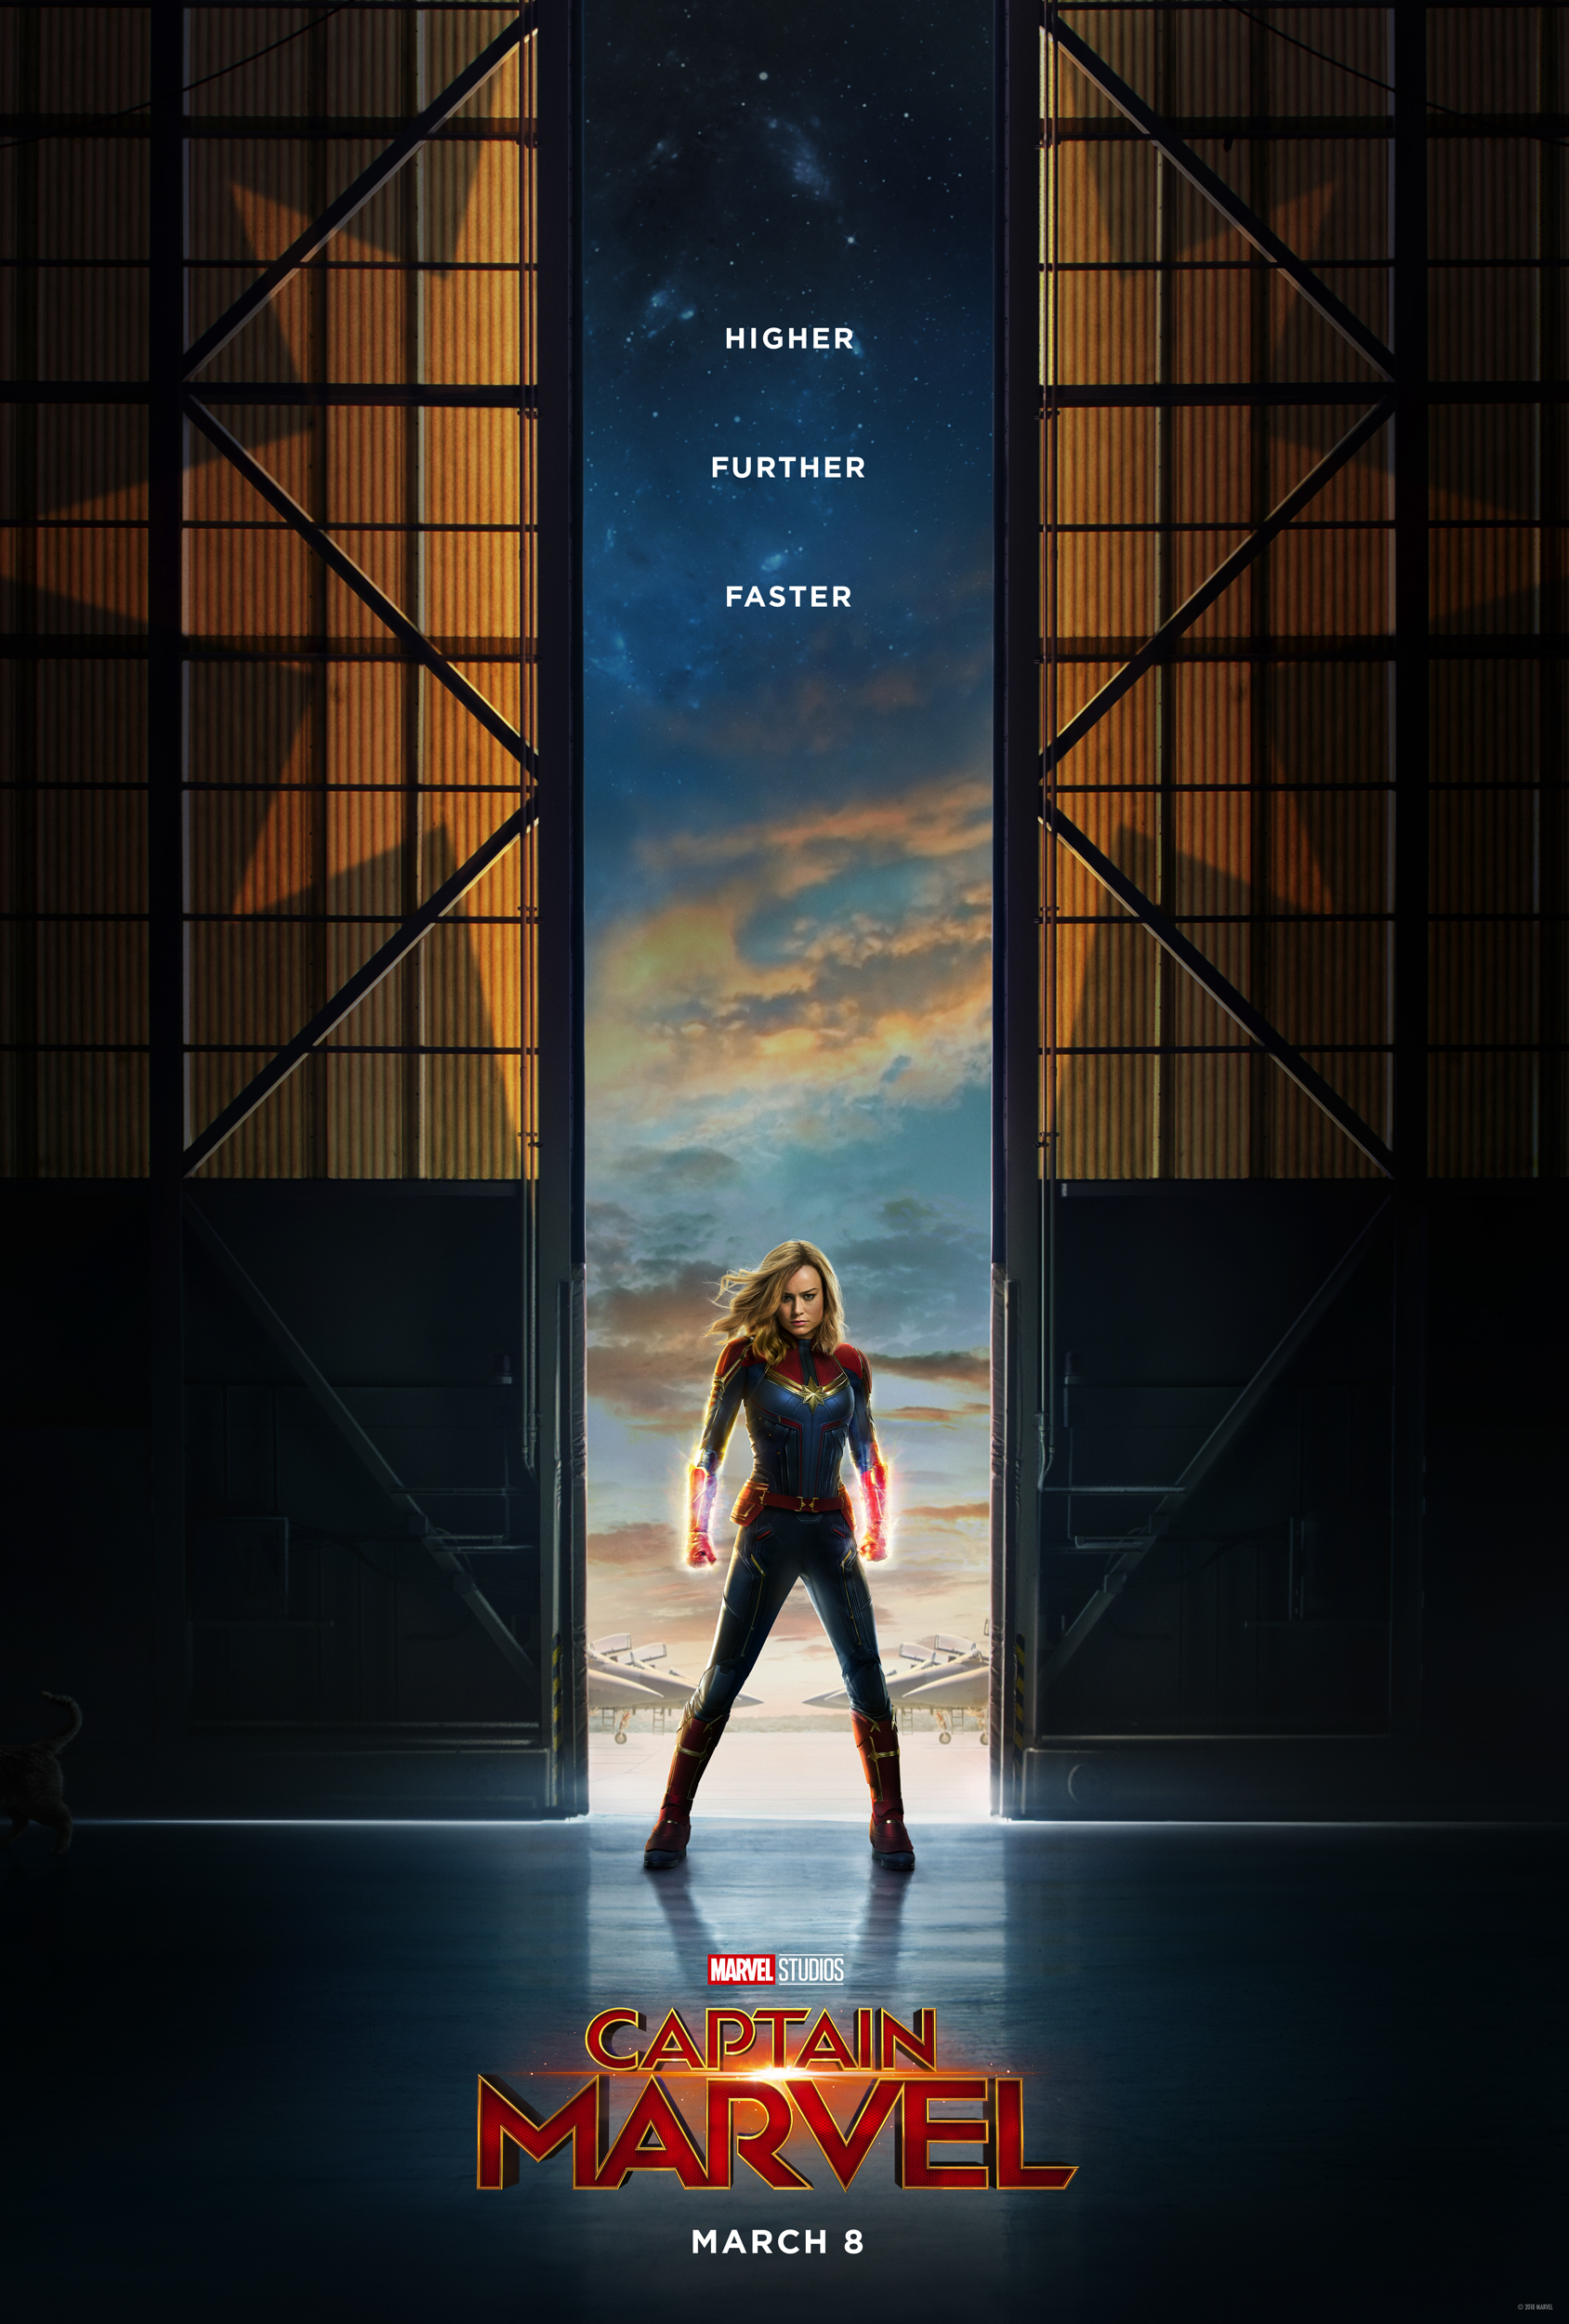 CaptainMarvel5ba10012bb485